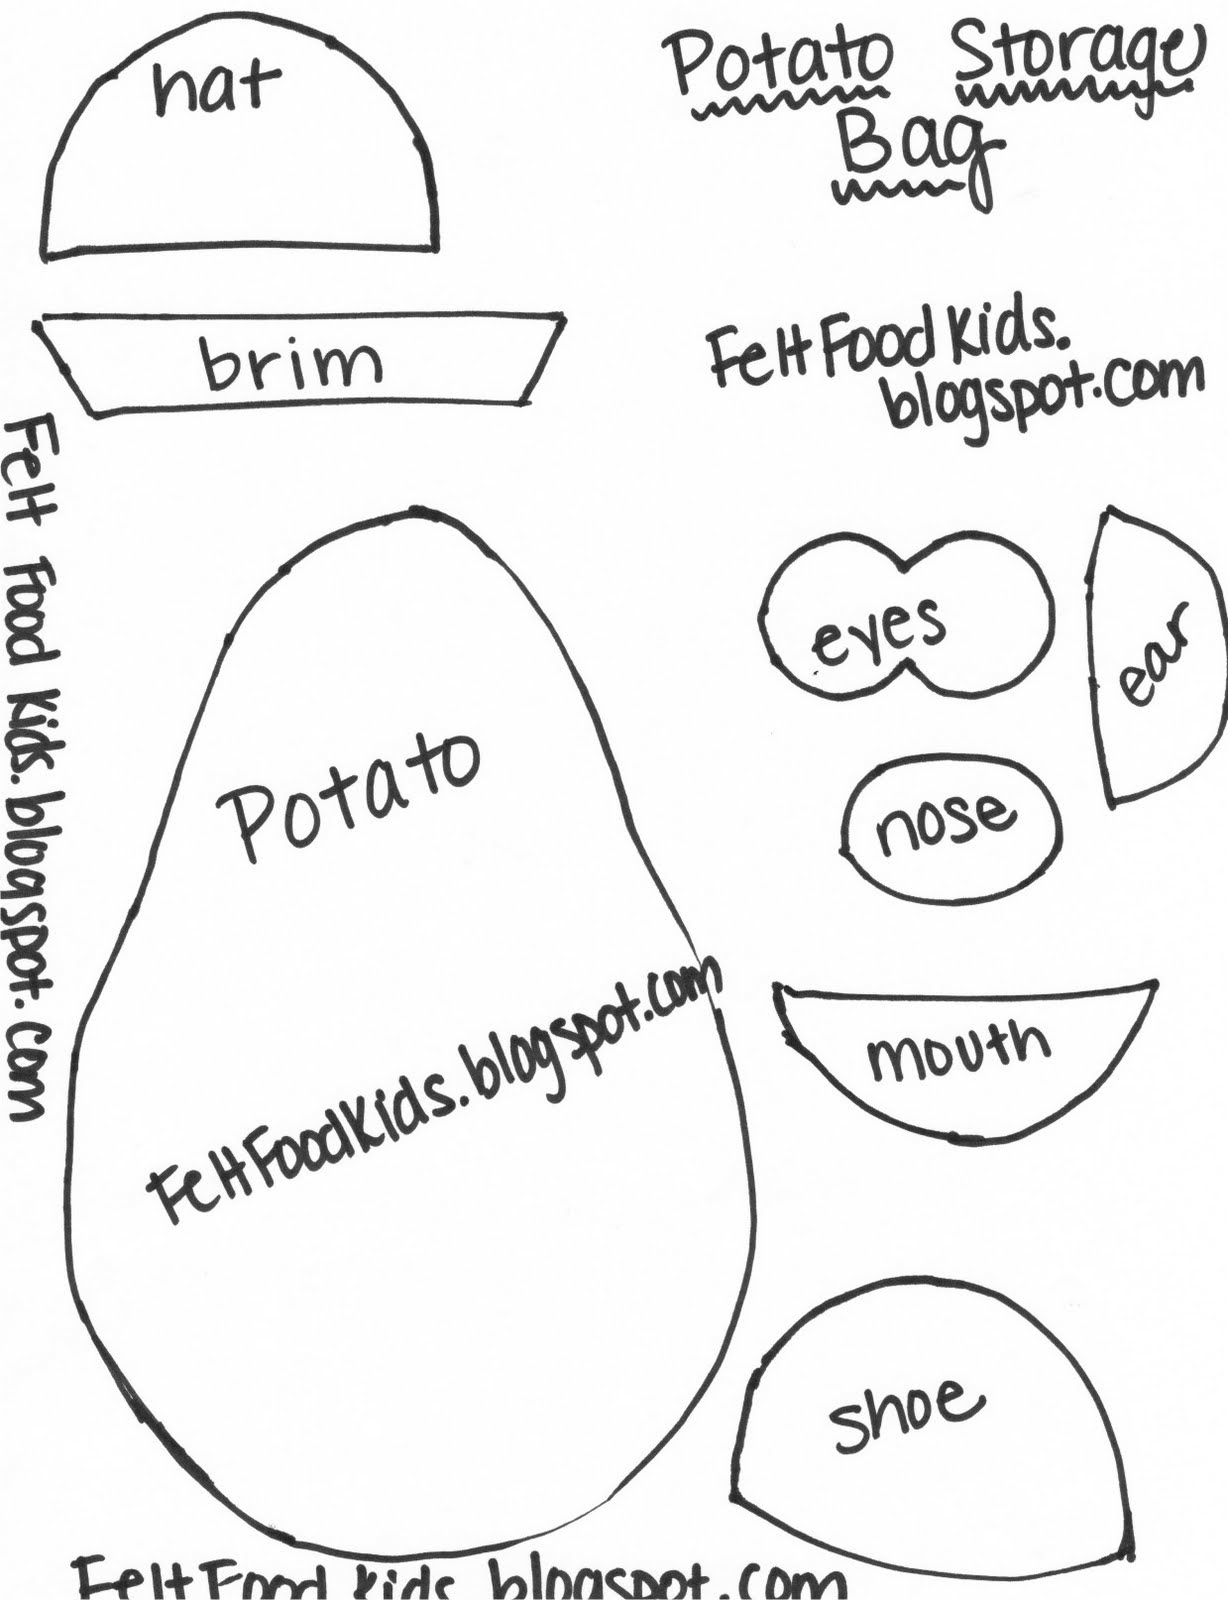 enjoy enjoy toy story printable coloring pages 2 disney coloring book mr potato head juggling